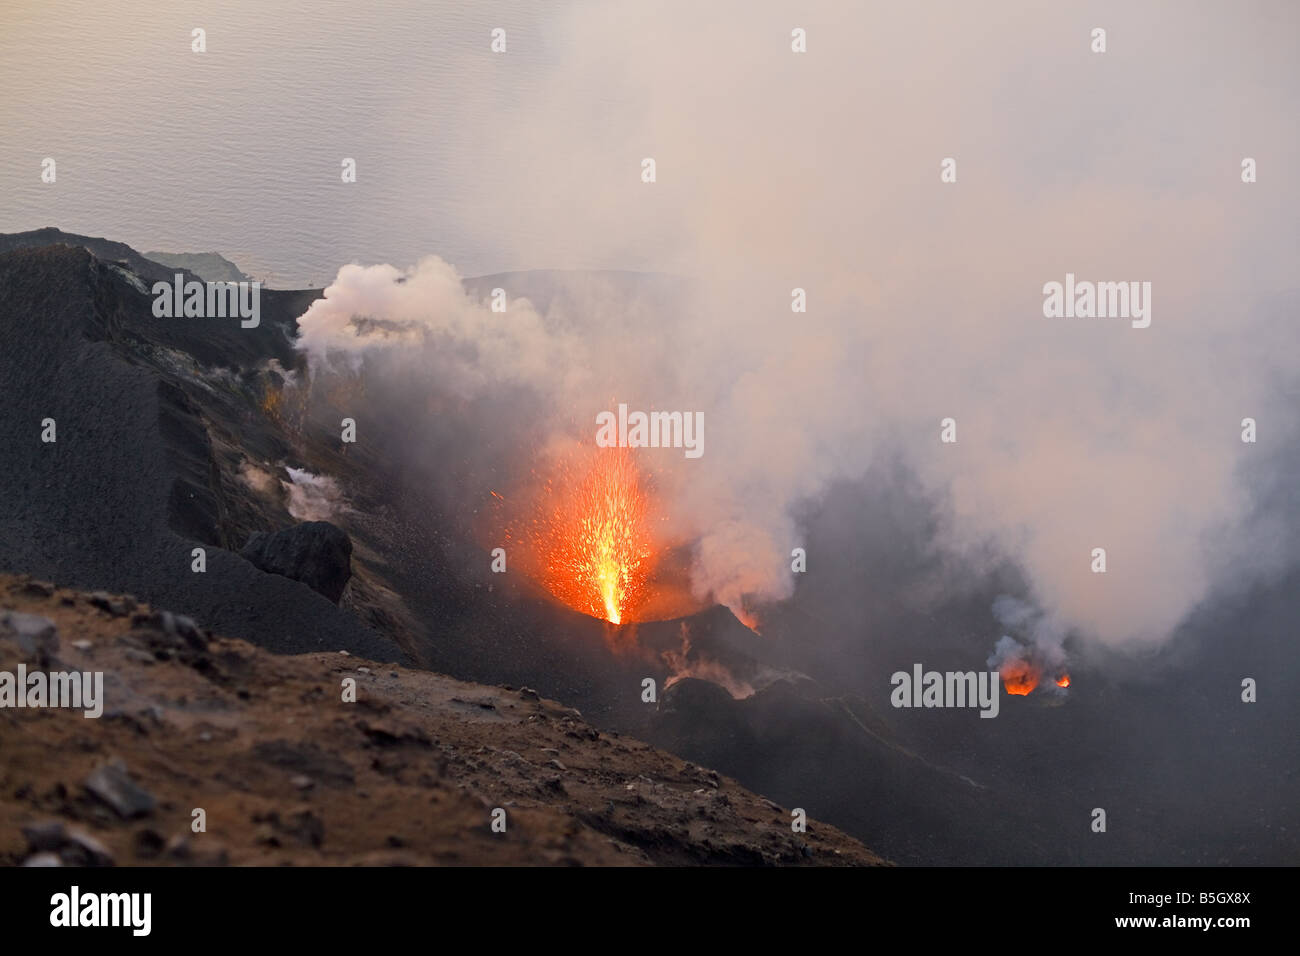 Stromboli's crater with an eruption from the NW vent - Stock Image